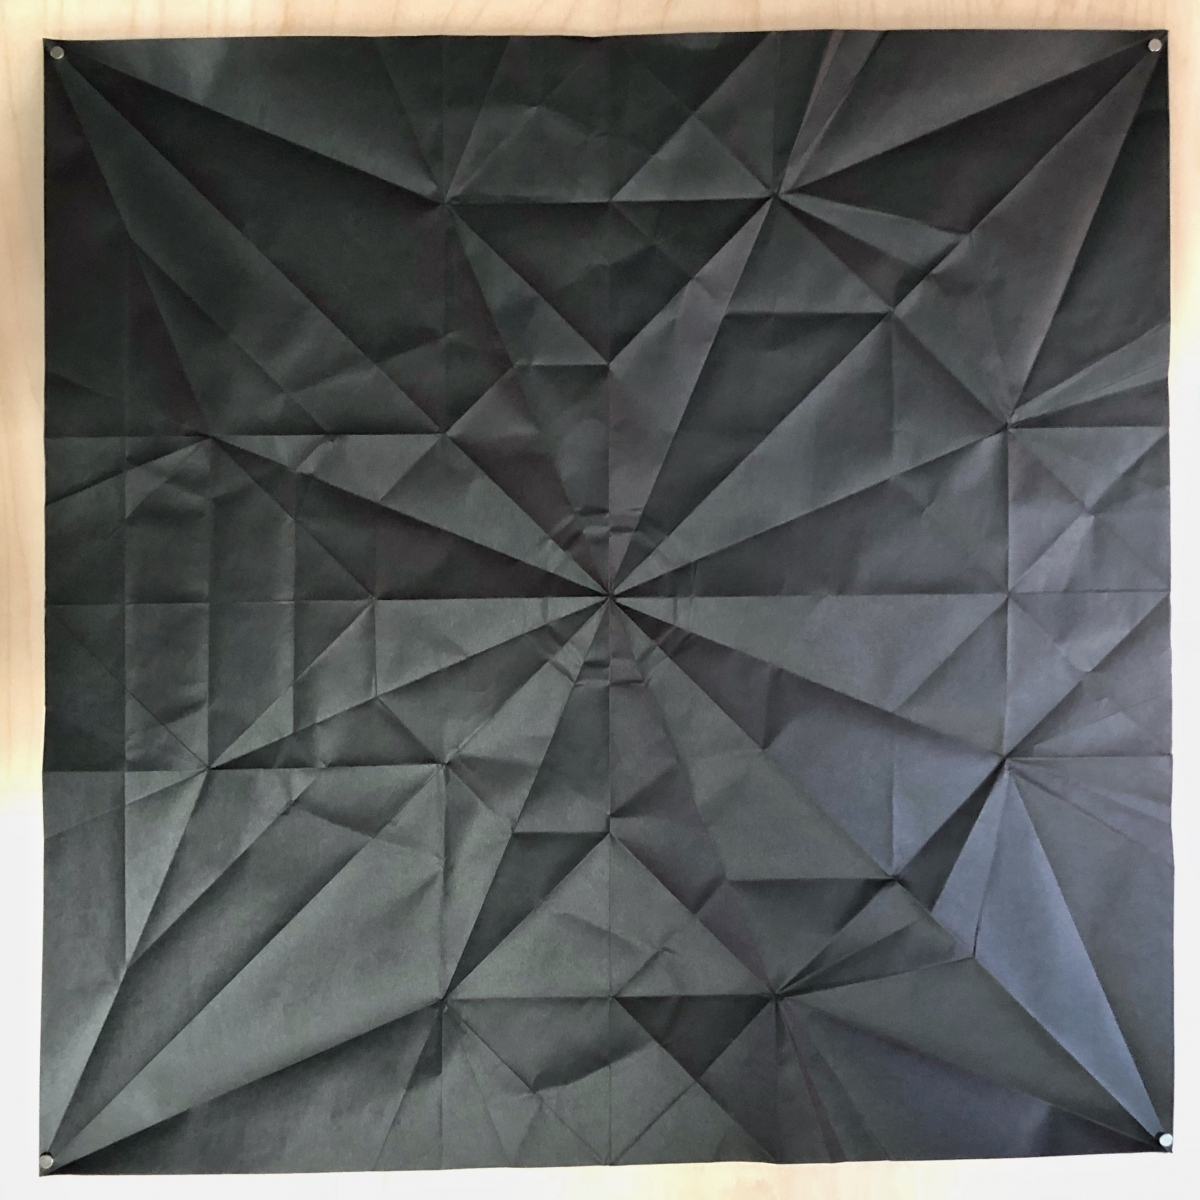 Kyoto's Swallow, 70 x 70 cm crease pattern [Sok Song]